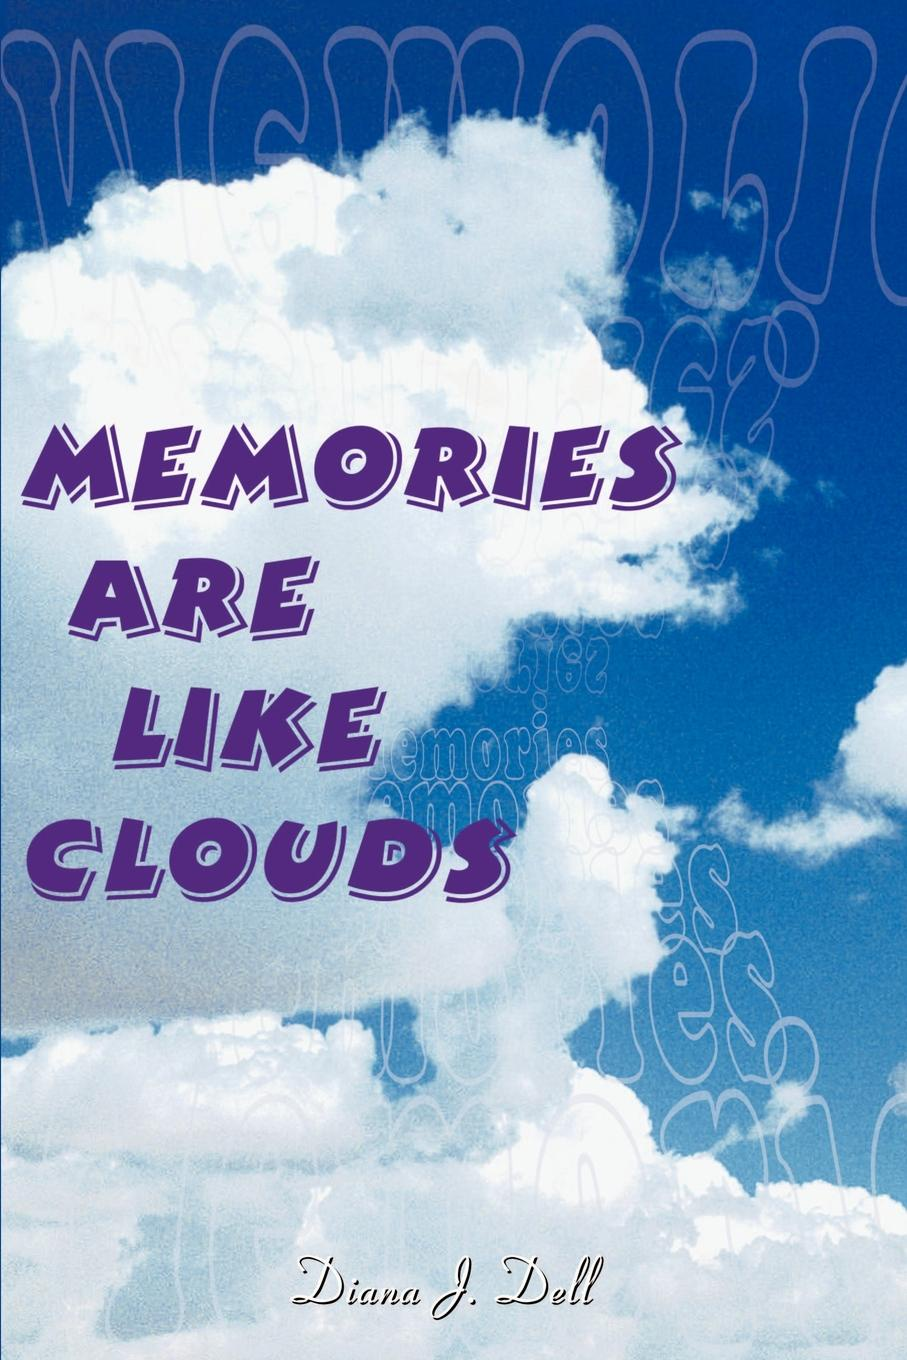 Diana J. Dell Memories Are Like Clouds